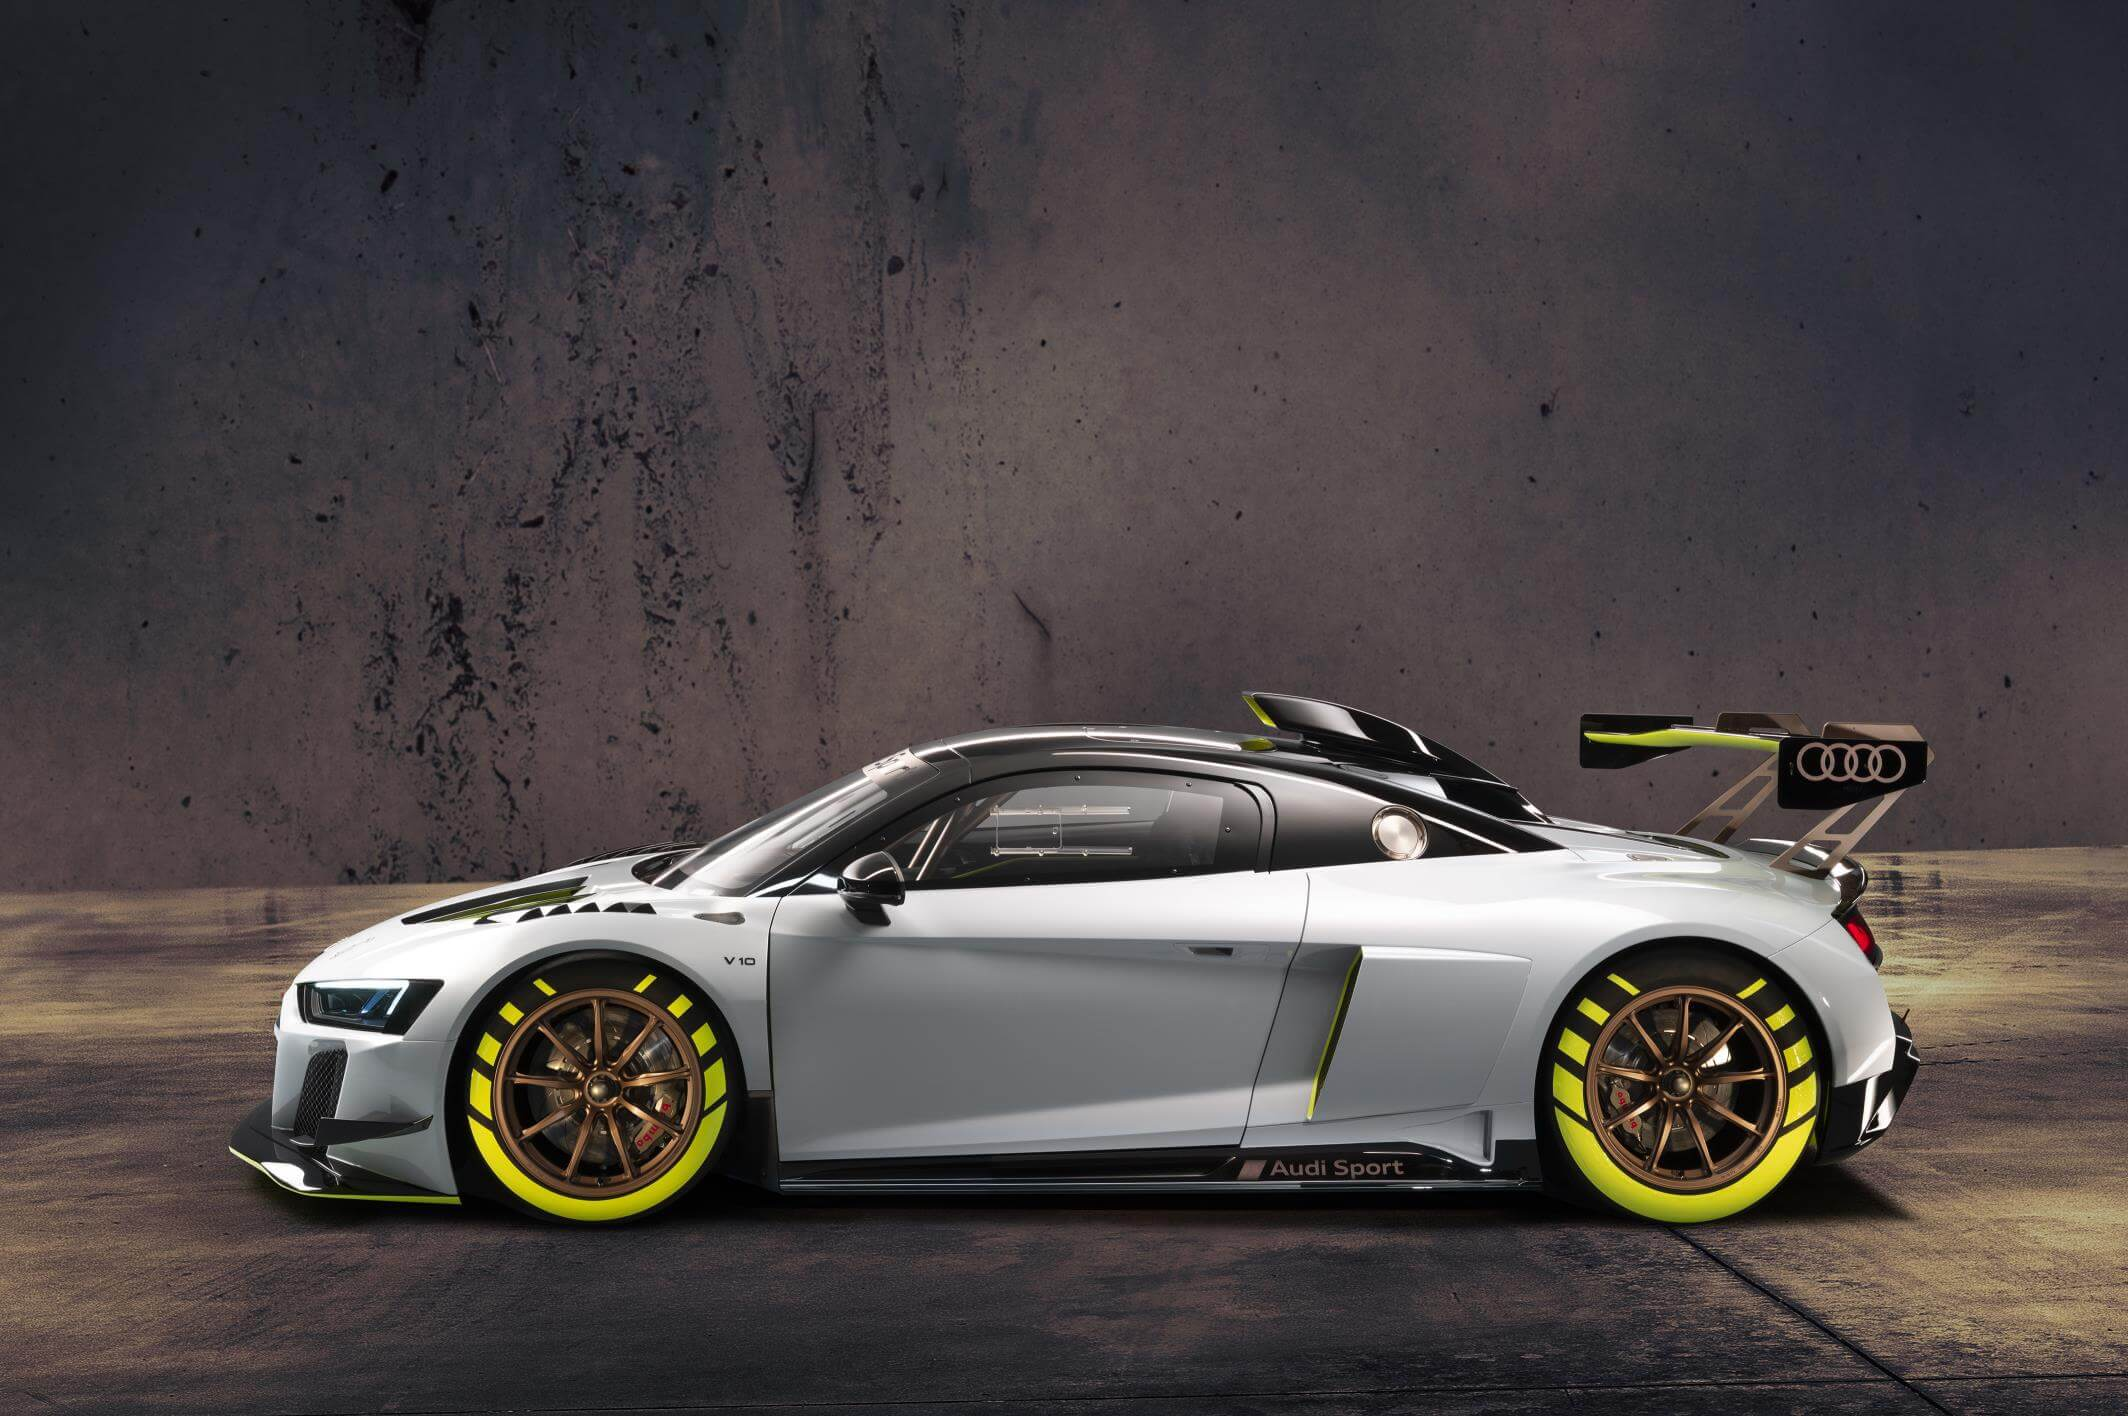 Audi R8 LMS GT2: lateral